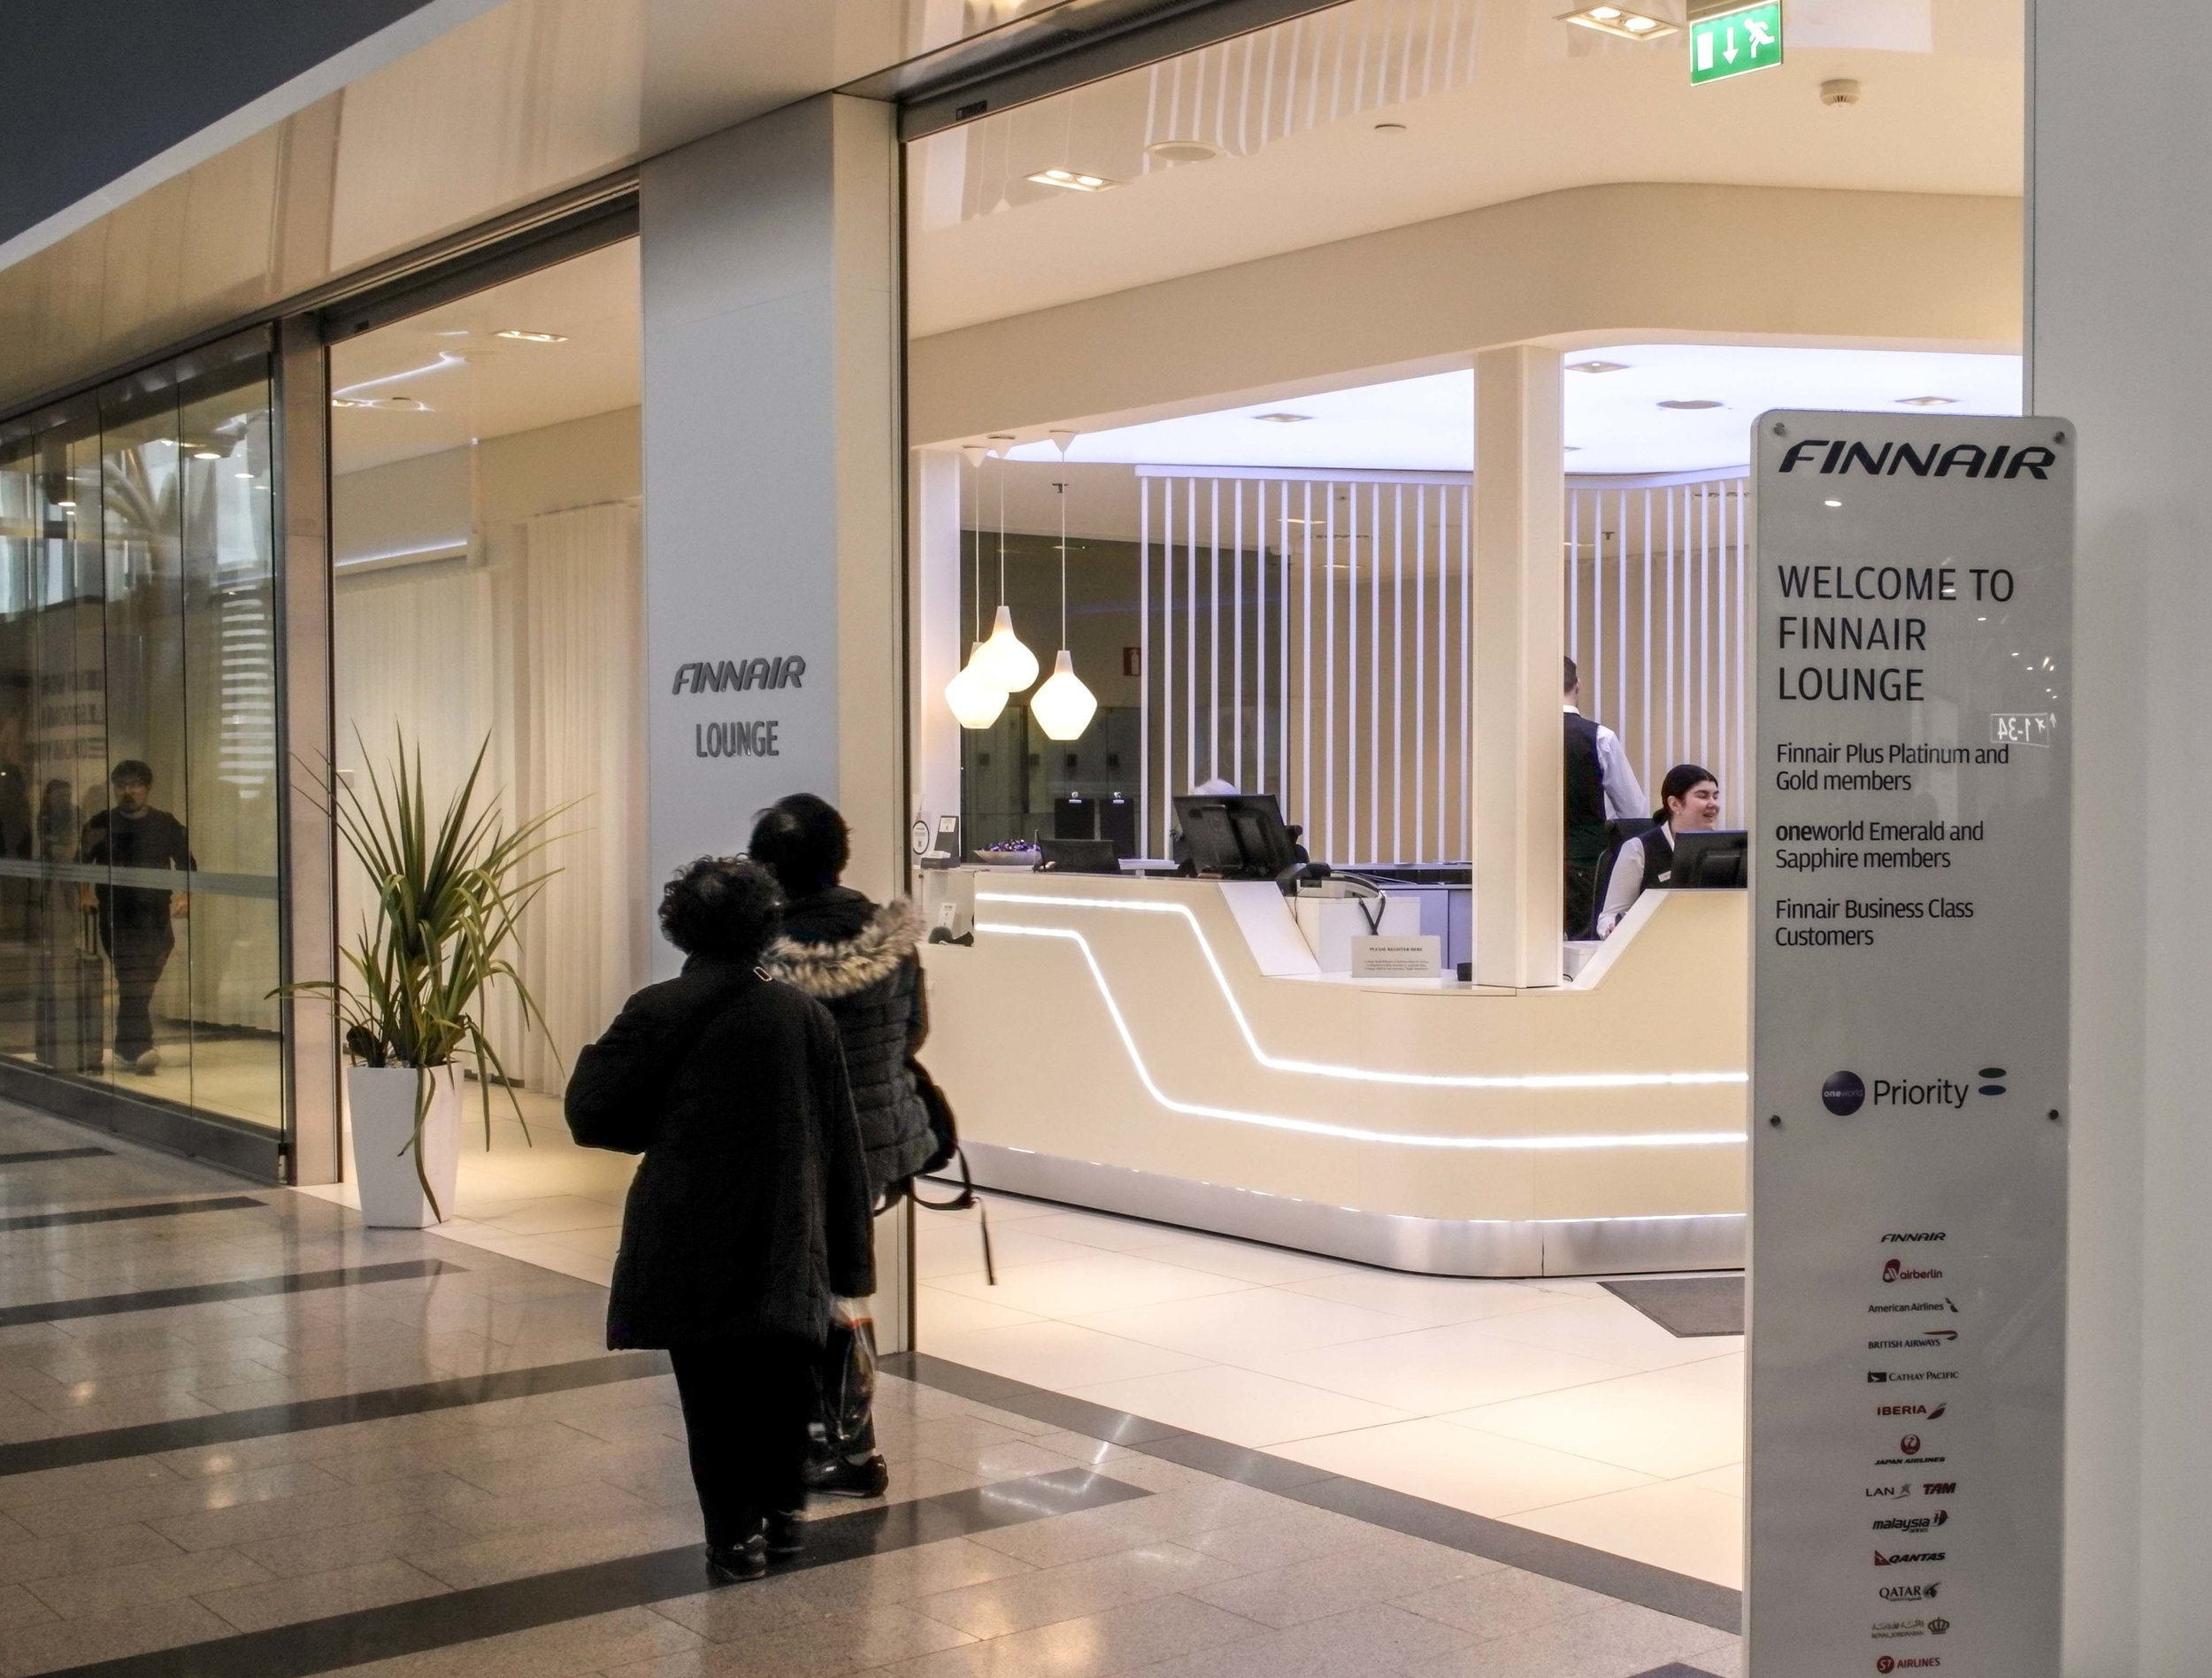 Finnair lounge entrance